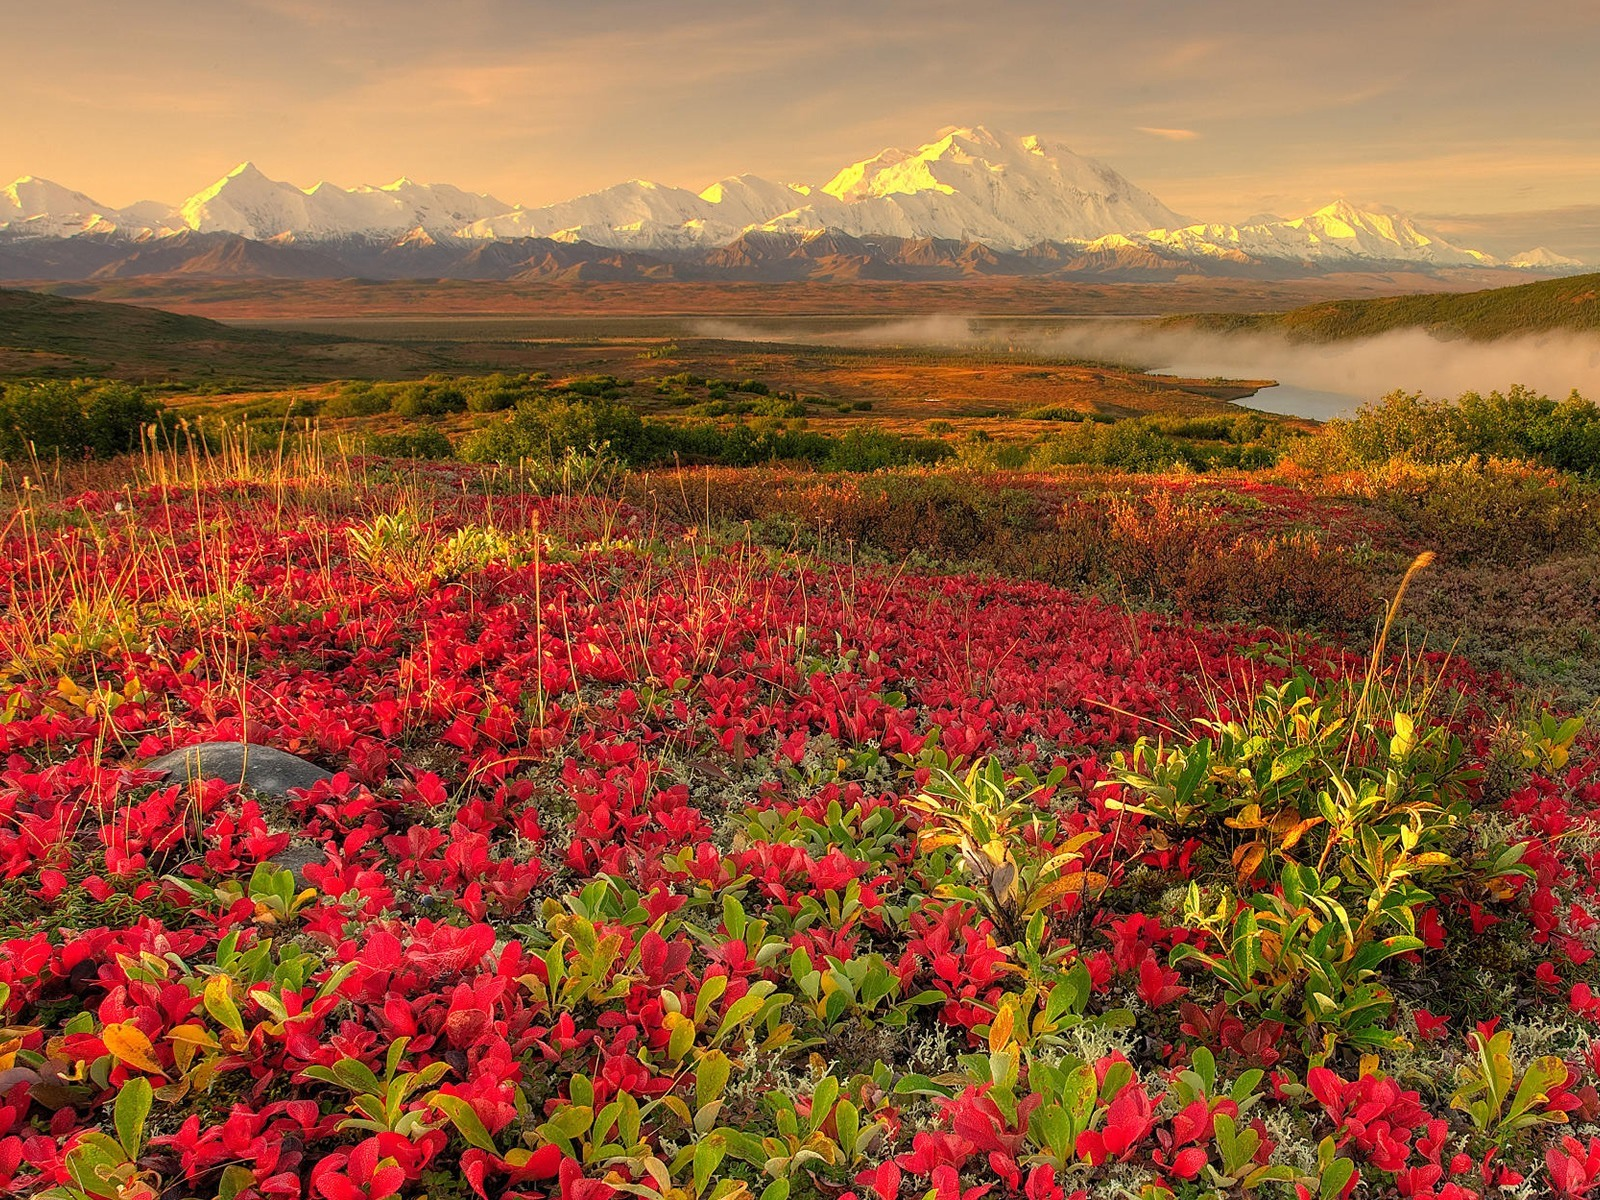 landscape wallpaper flowers